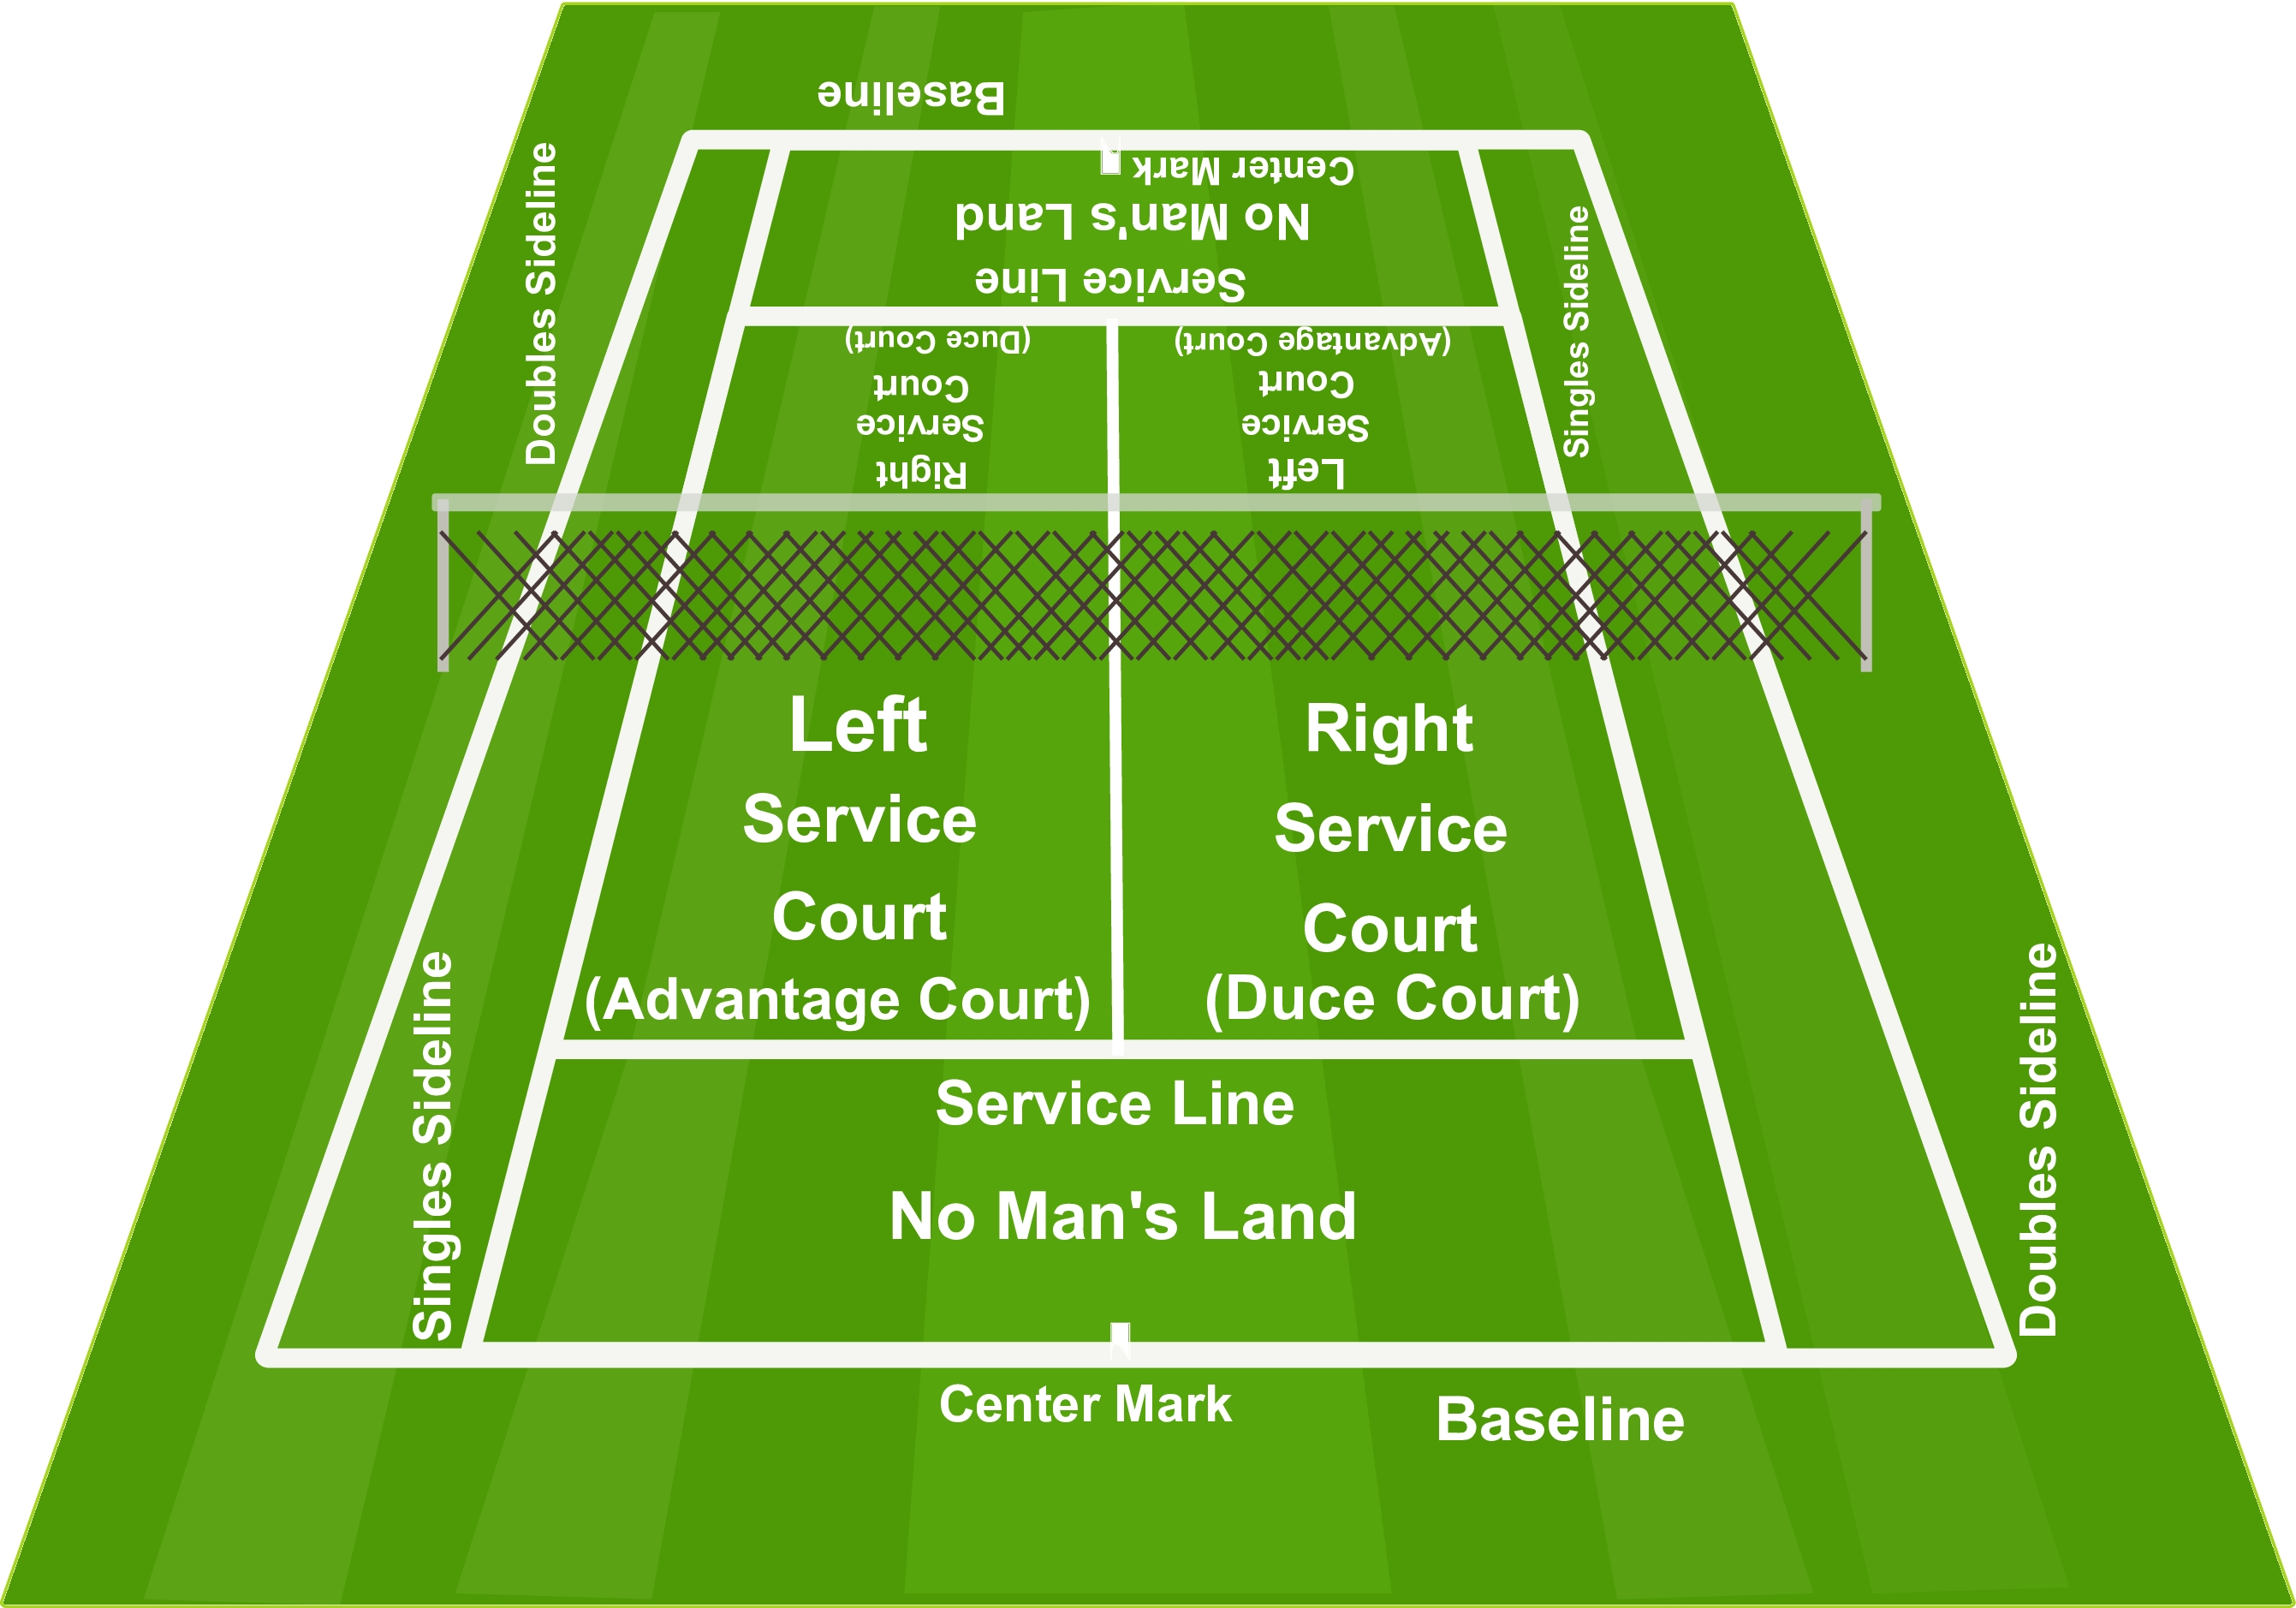 measurement of tennis court with diagram spark plug to cold what is the disadvantich clickhowto